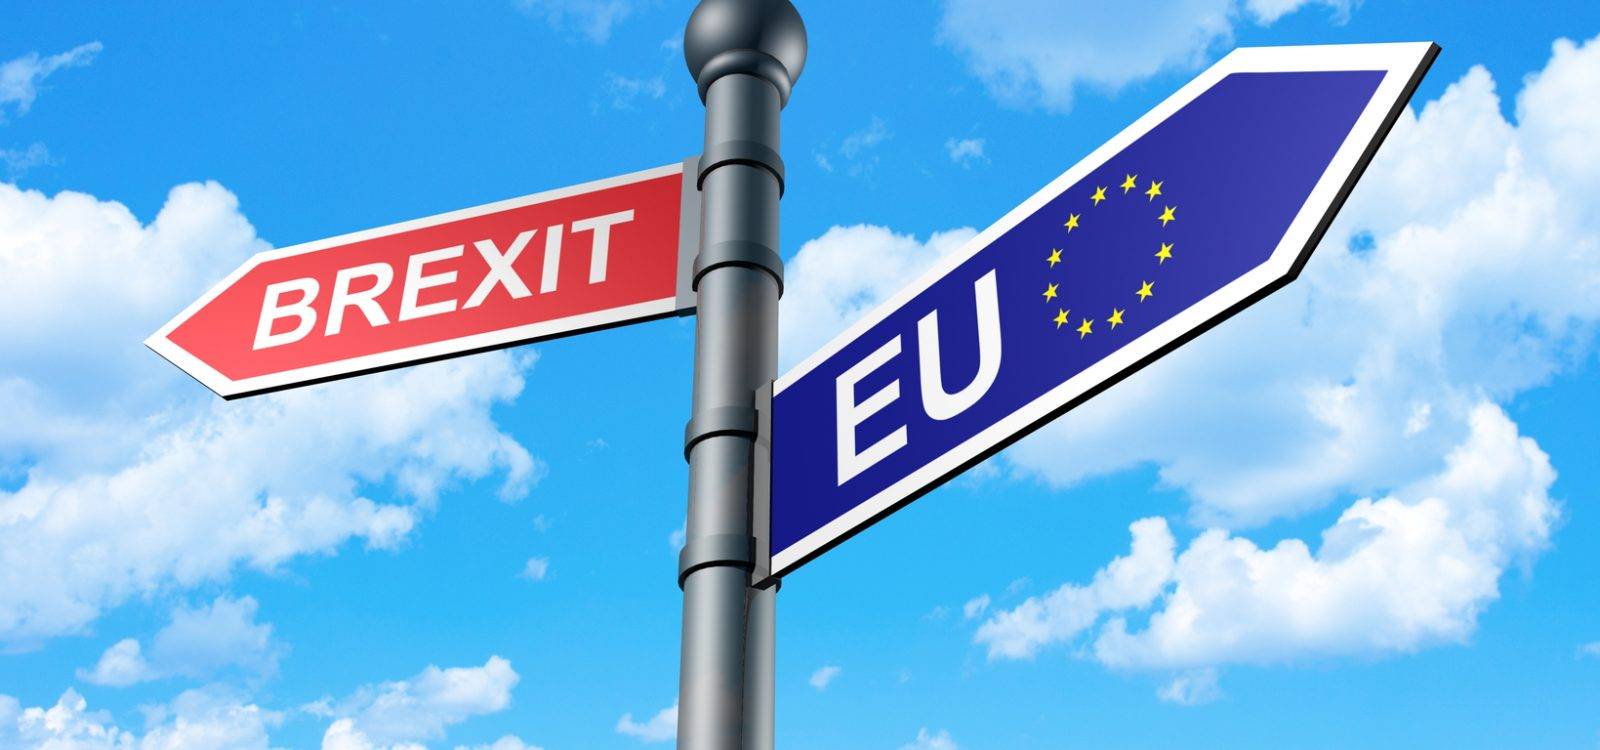 Brexit exit – a trip down hindsight lane